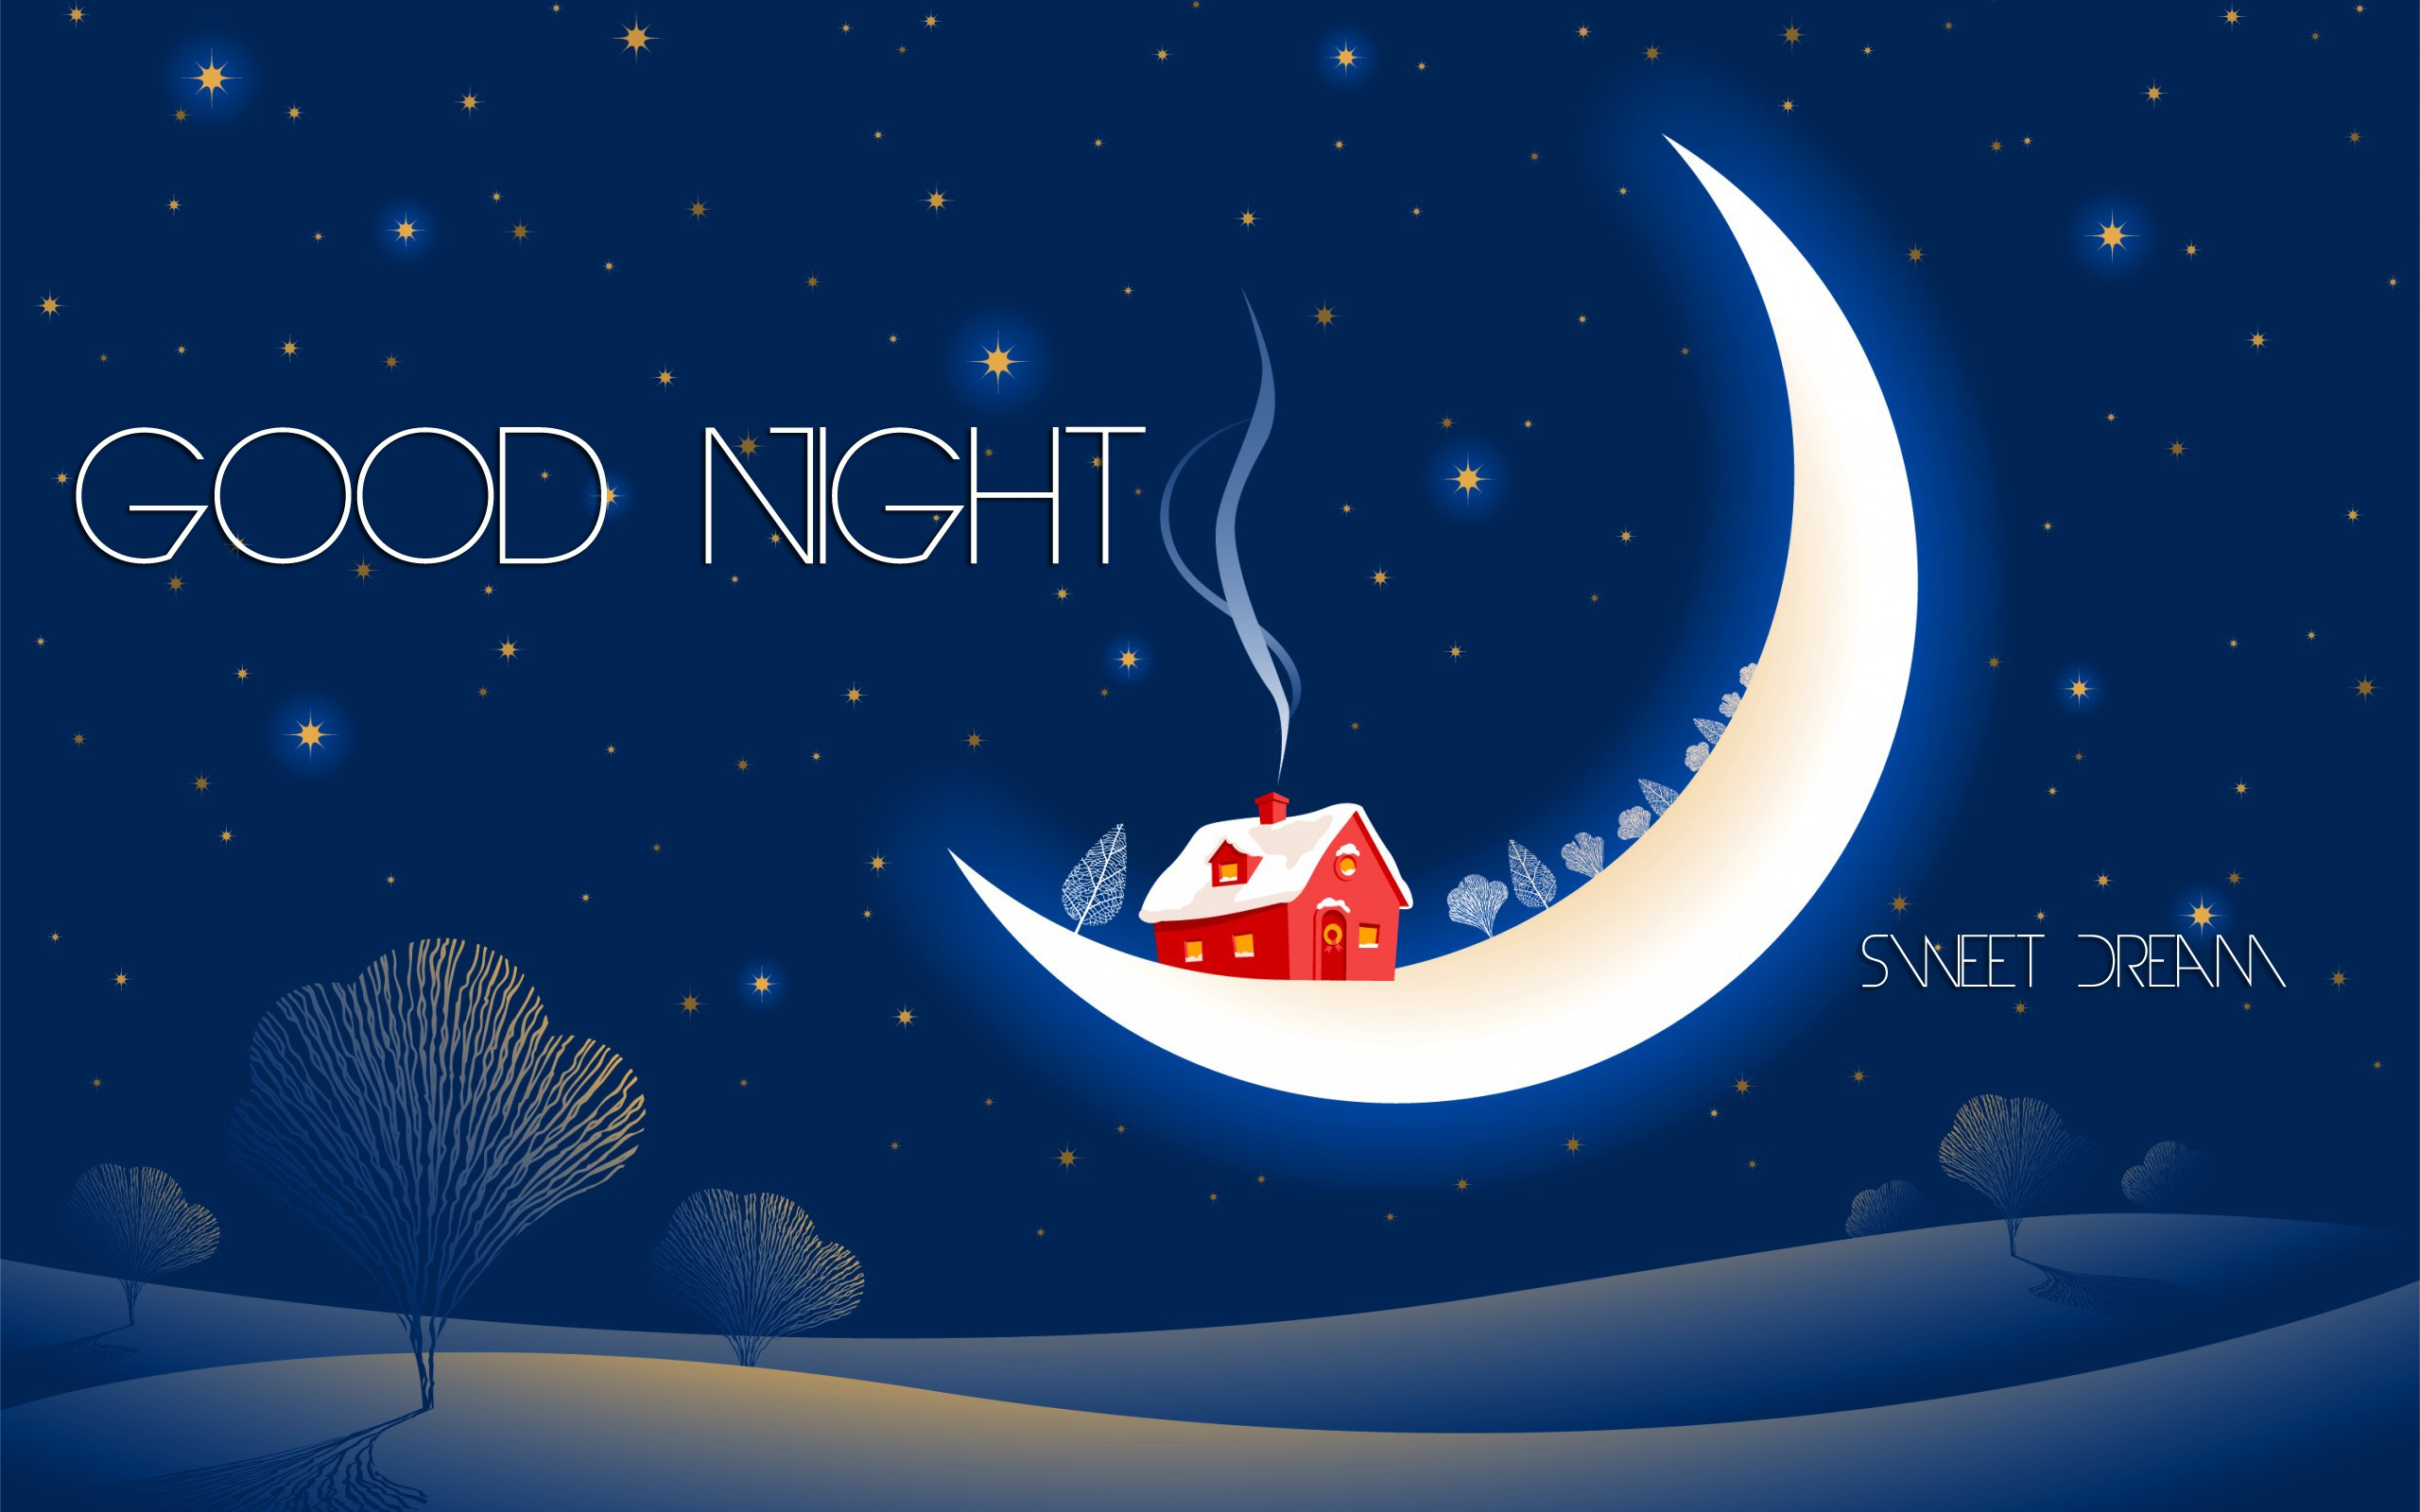 Good Night Sms With Love Wallpaper : Good Night Wallpapers, Pictures, Images